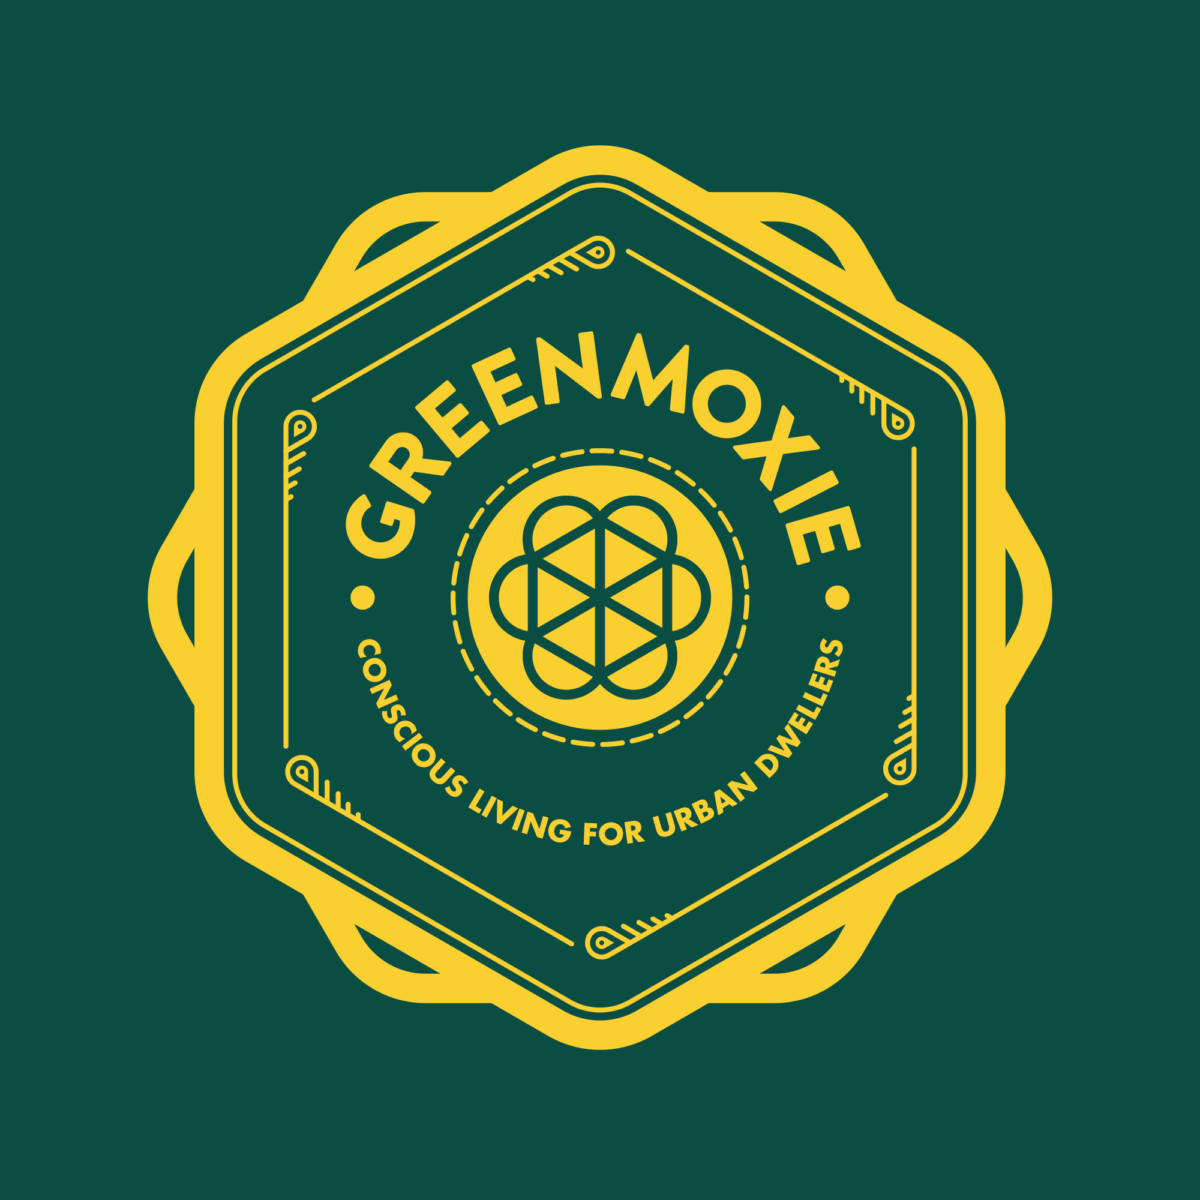 Greenmoxie